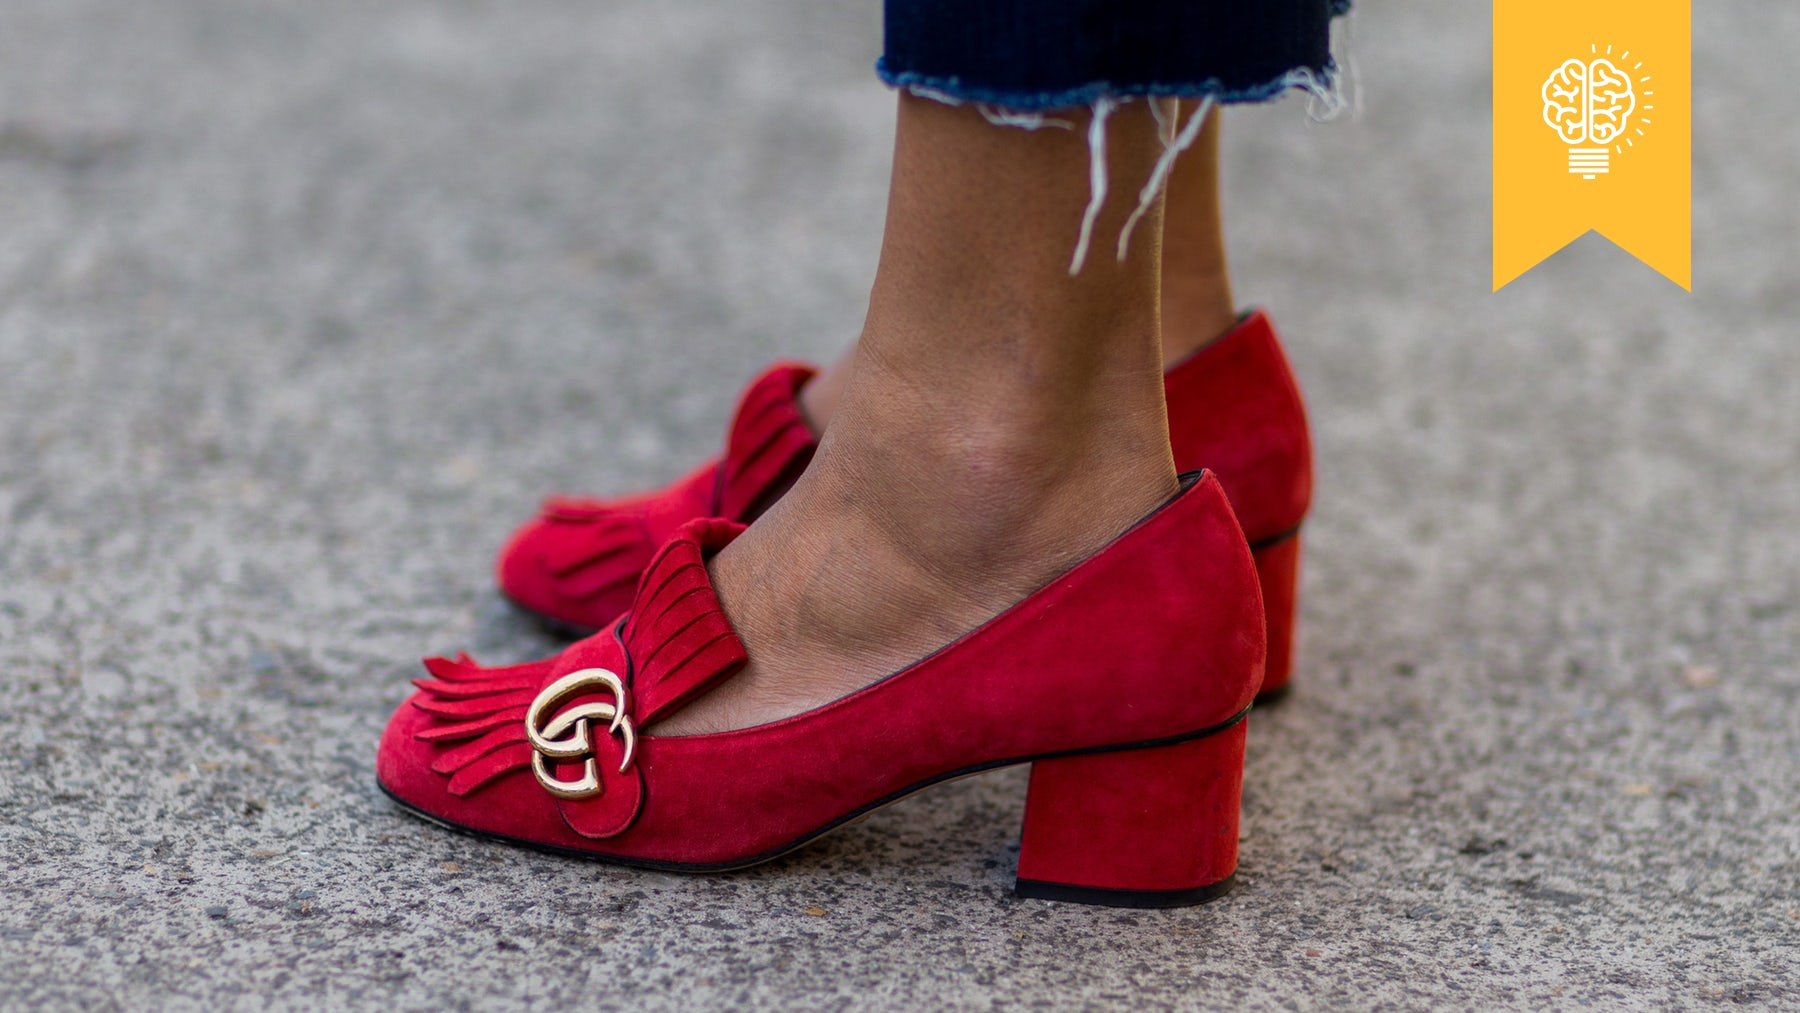 Red Gucci loafers | Source: Christian Vierig/WireImage